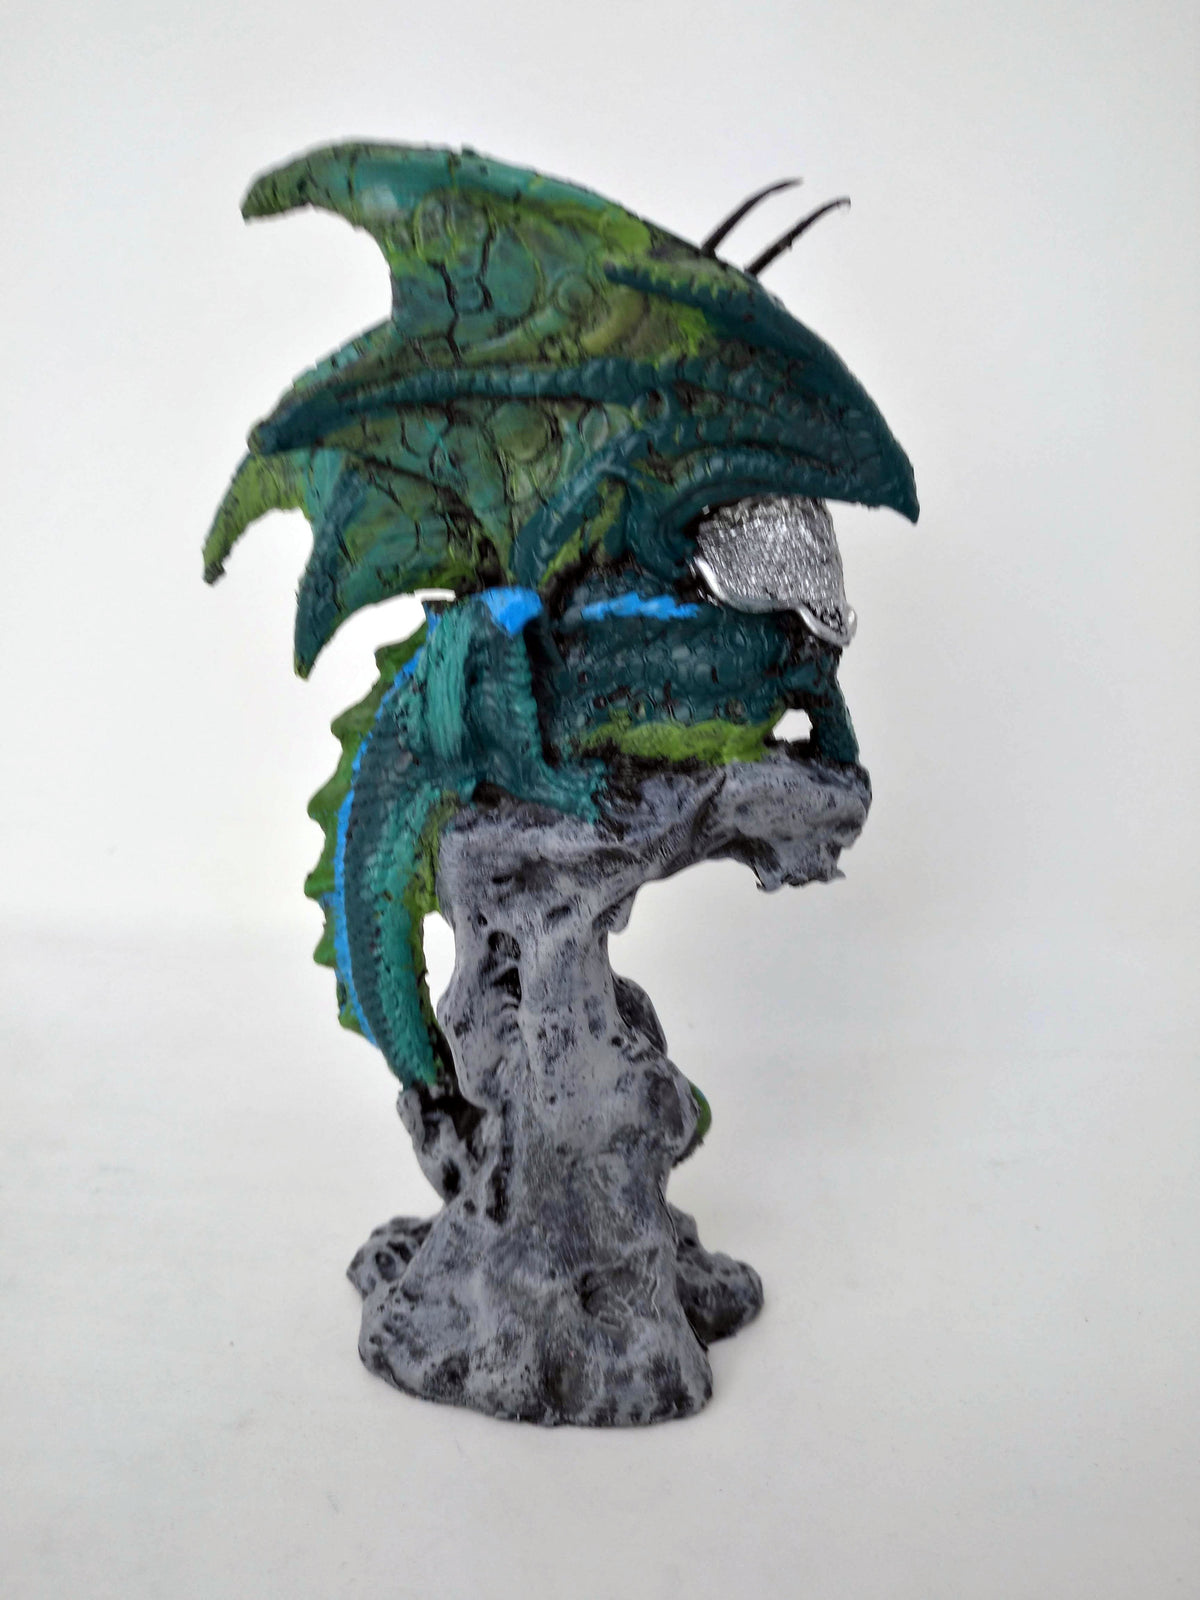 Green Dragon Protecting Jewel On Perch Statue